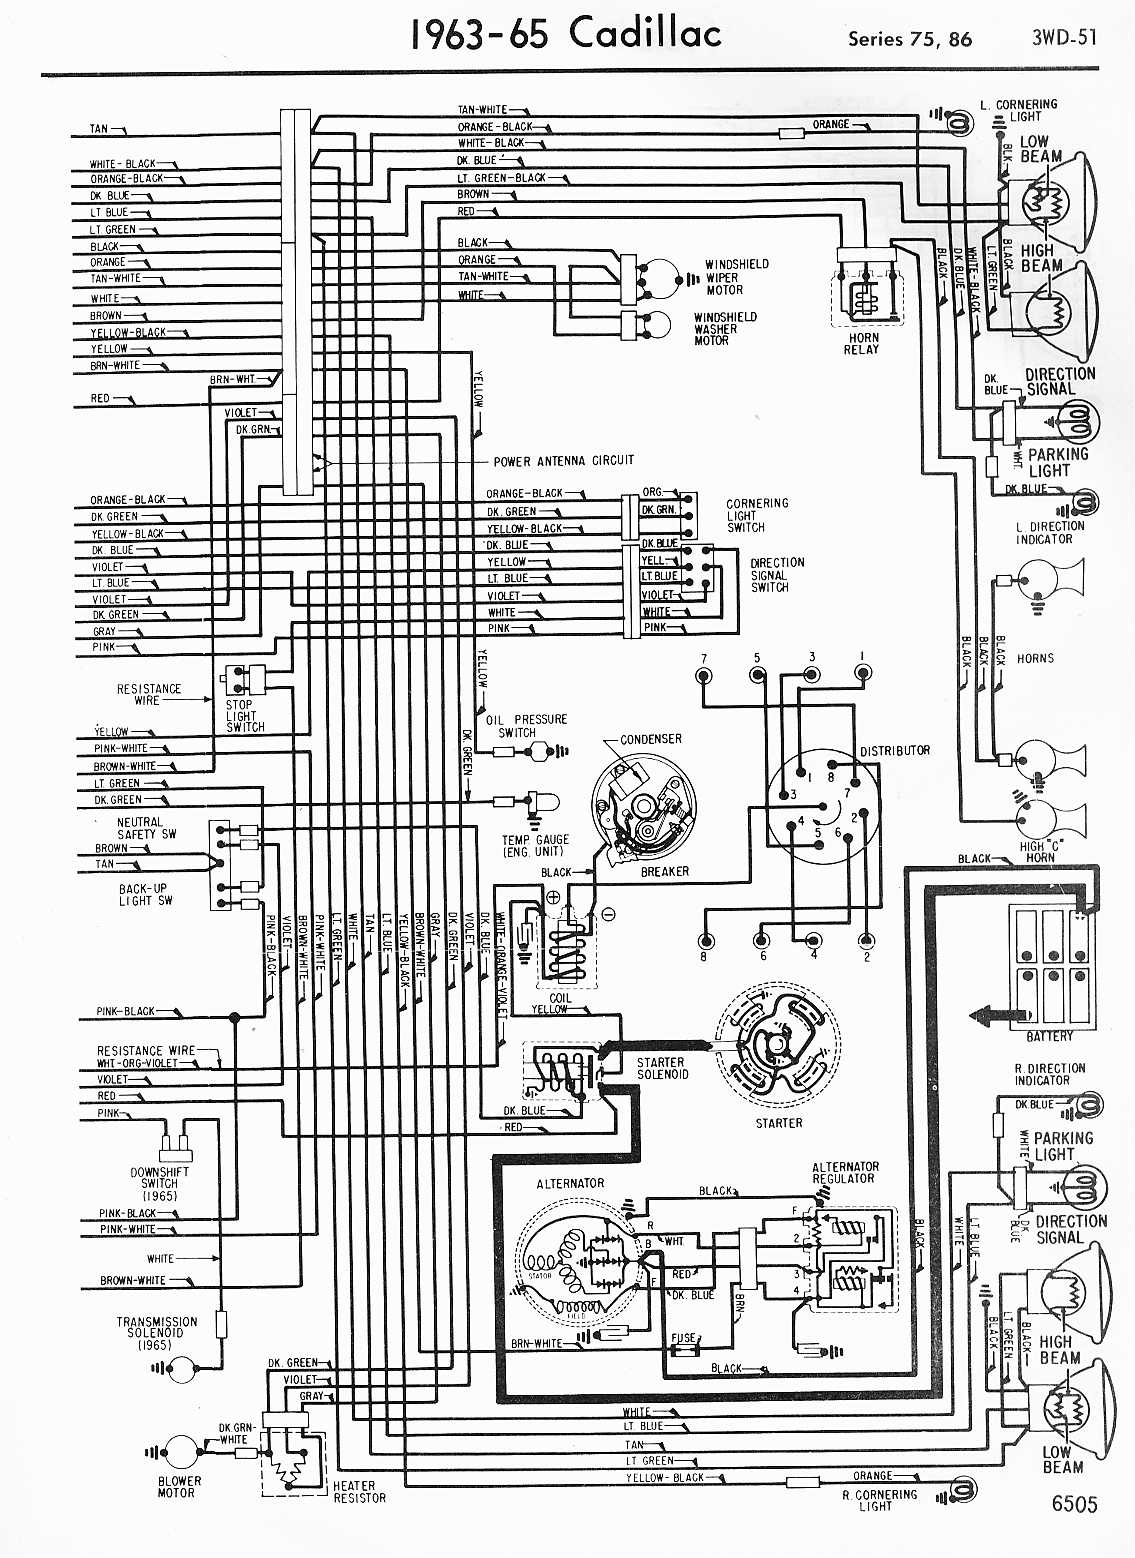 1969 Cadillac Fuse Box Diagram Manual Guide Wiring Stereo Honda Accord Diagrams 1957 1965 Rh Oldcarmanualproject Com 97 Deville